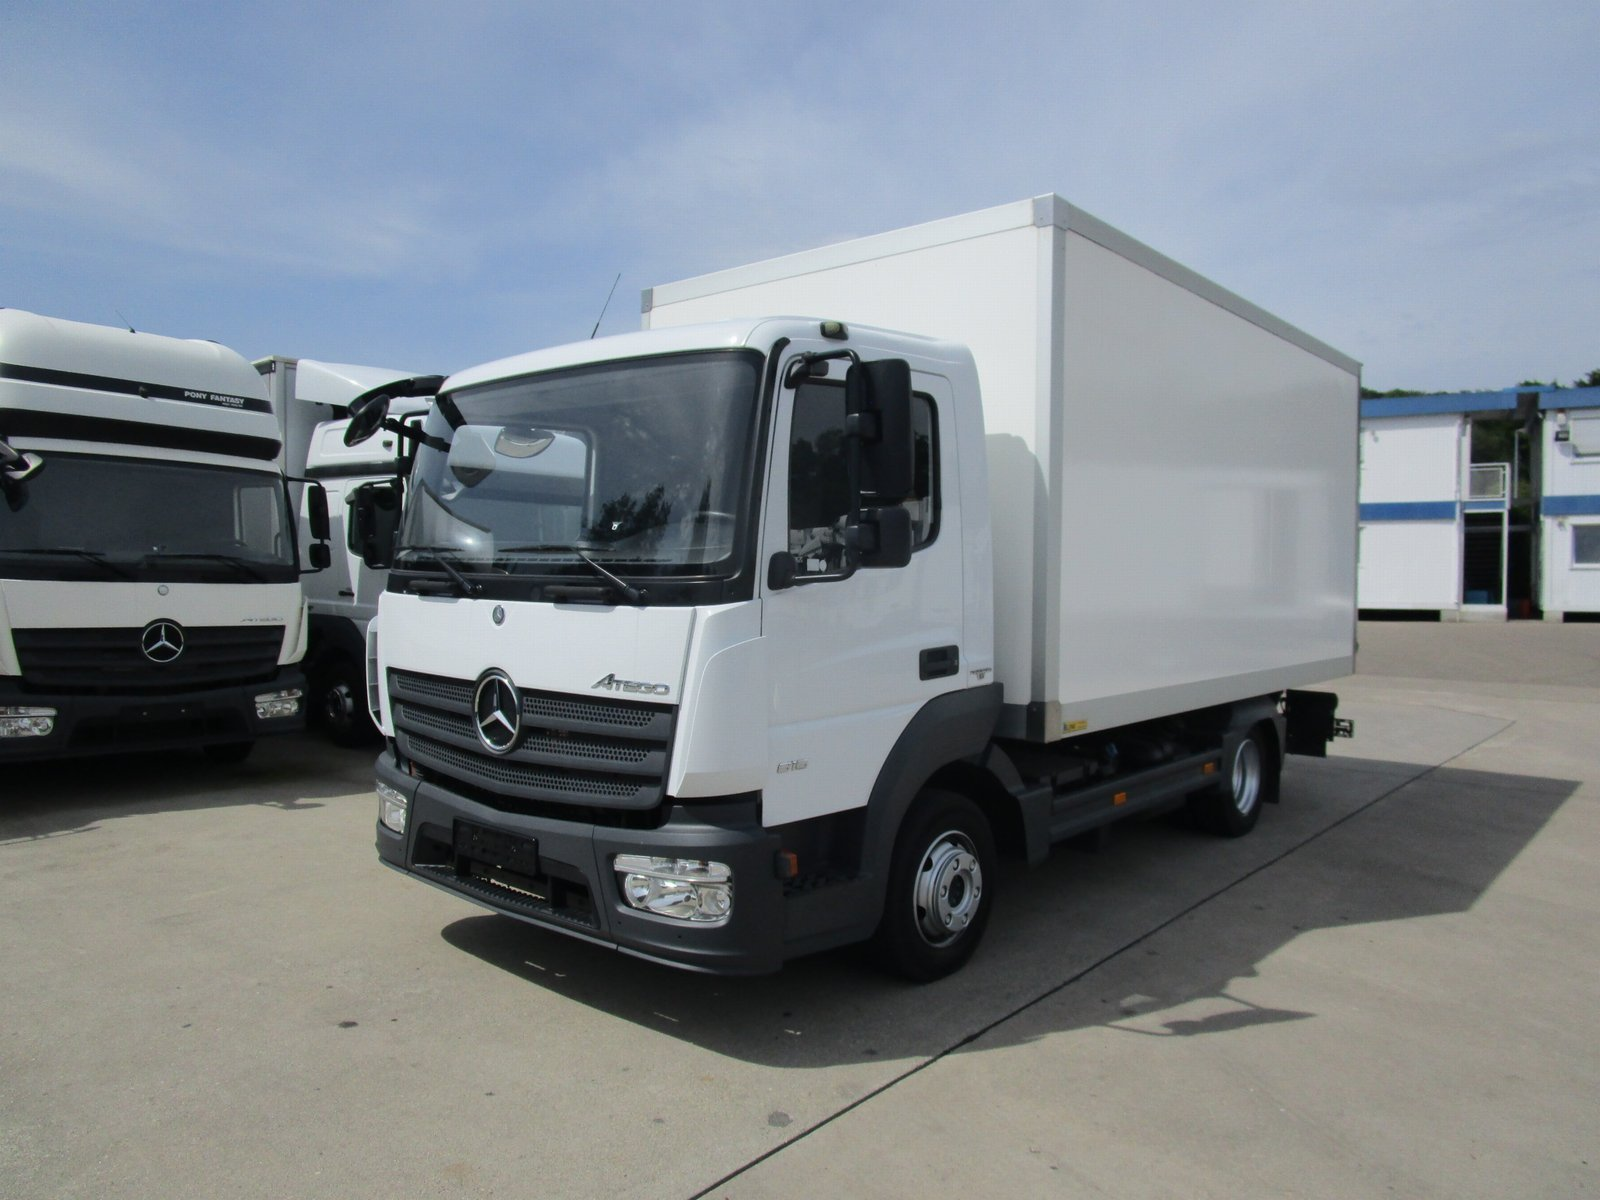 ATEGO IV 816 L Koffer 4,60 m LBW 1 to.* E 6